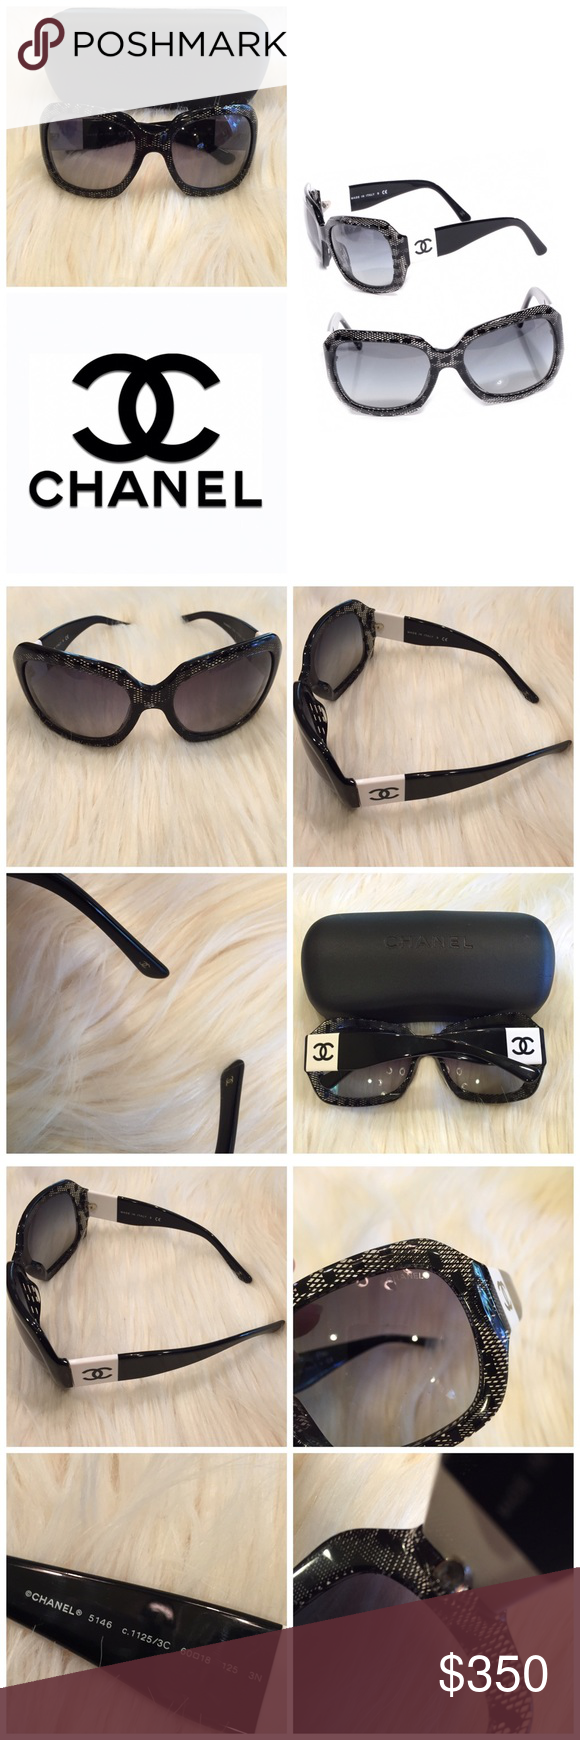 c31bf1fc911f CHANEL LACE EFFECT 5146 SUNGLASSES I was given these as a gift and already  had Chanel glasses in black. NWOT